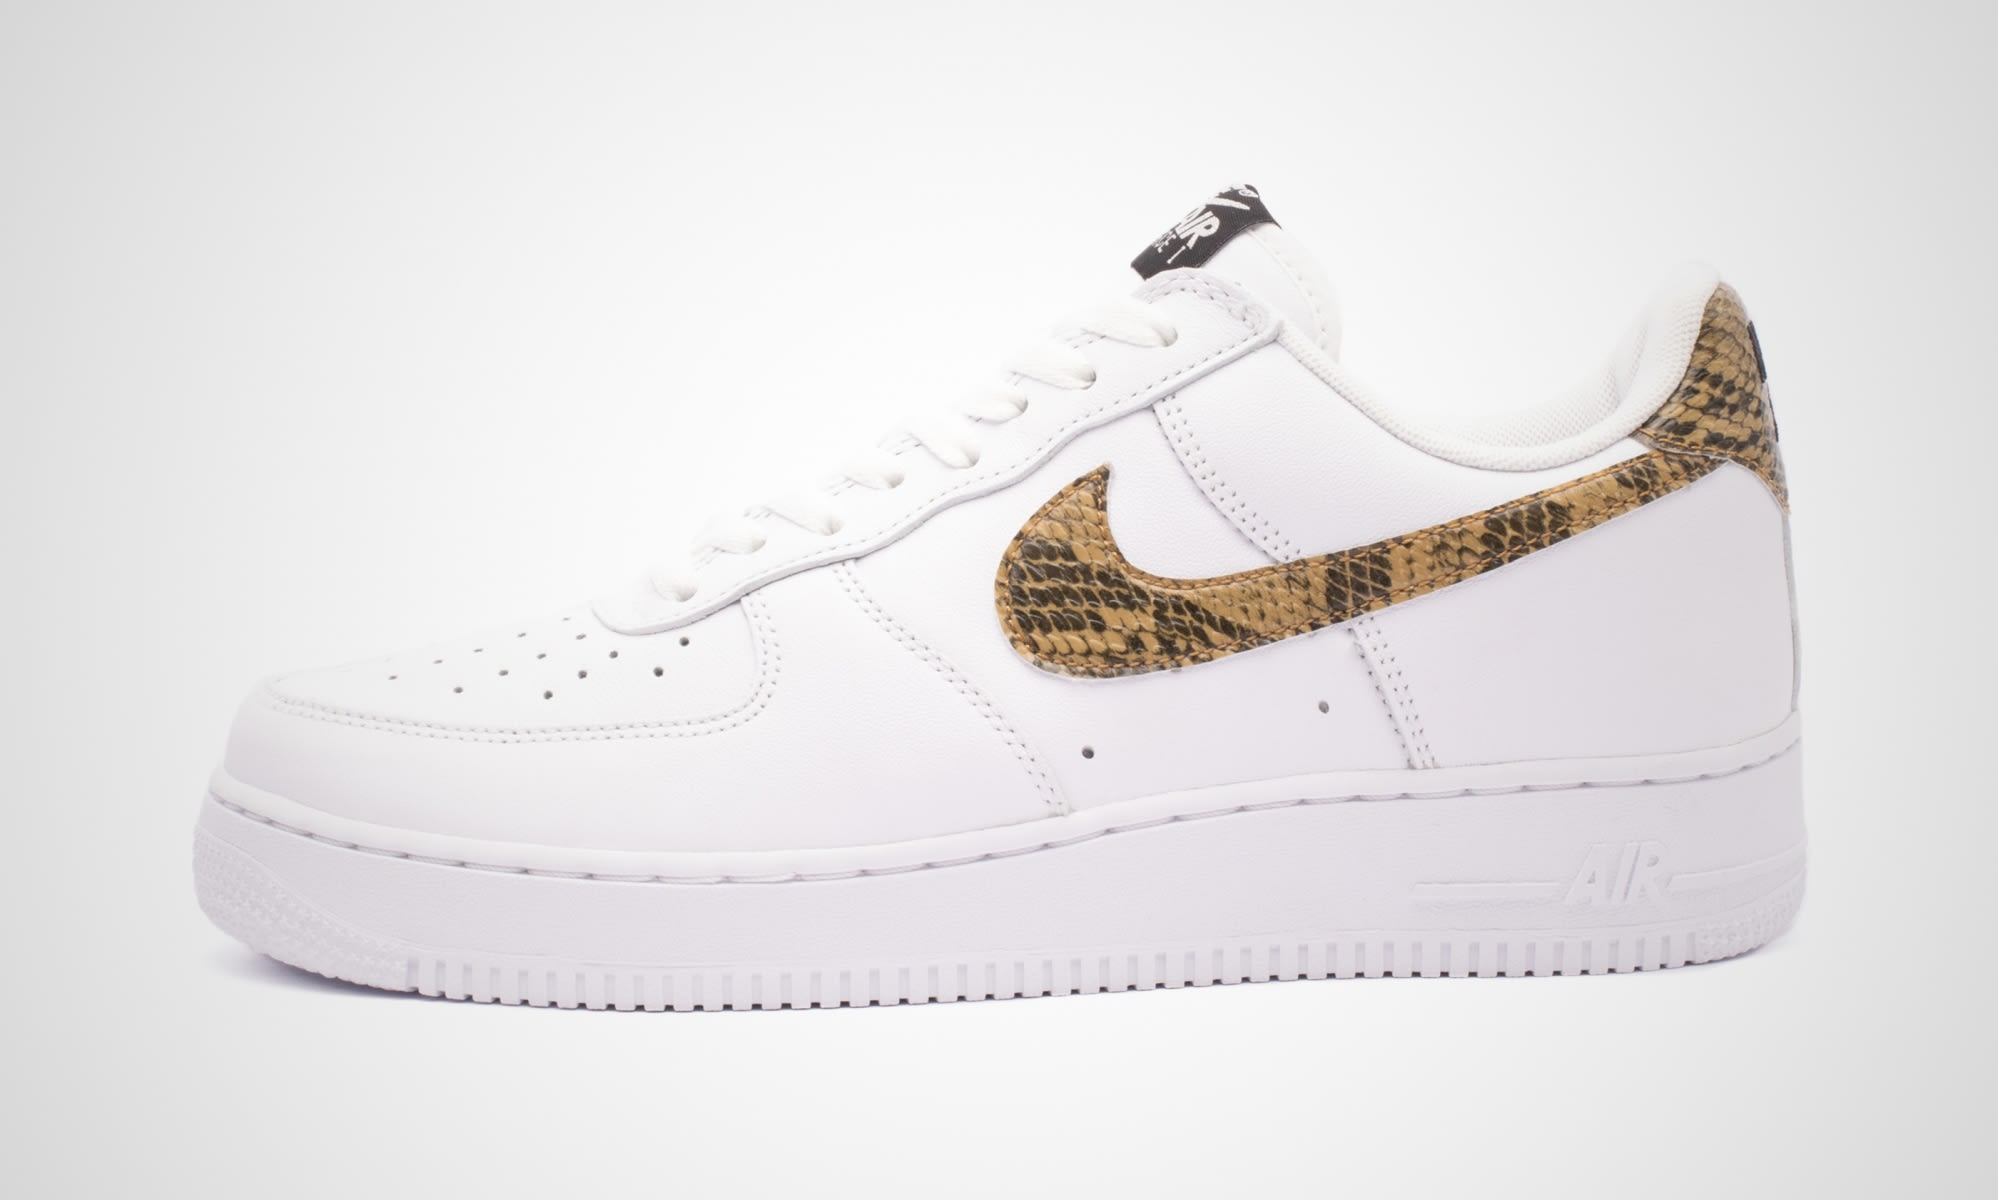 Nike Air Force 1 Low 'Ivory Snake' AO1635-100 (Lateral)